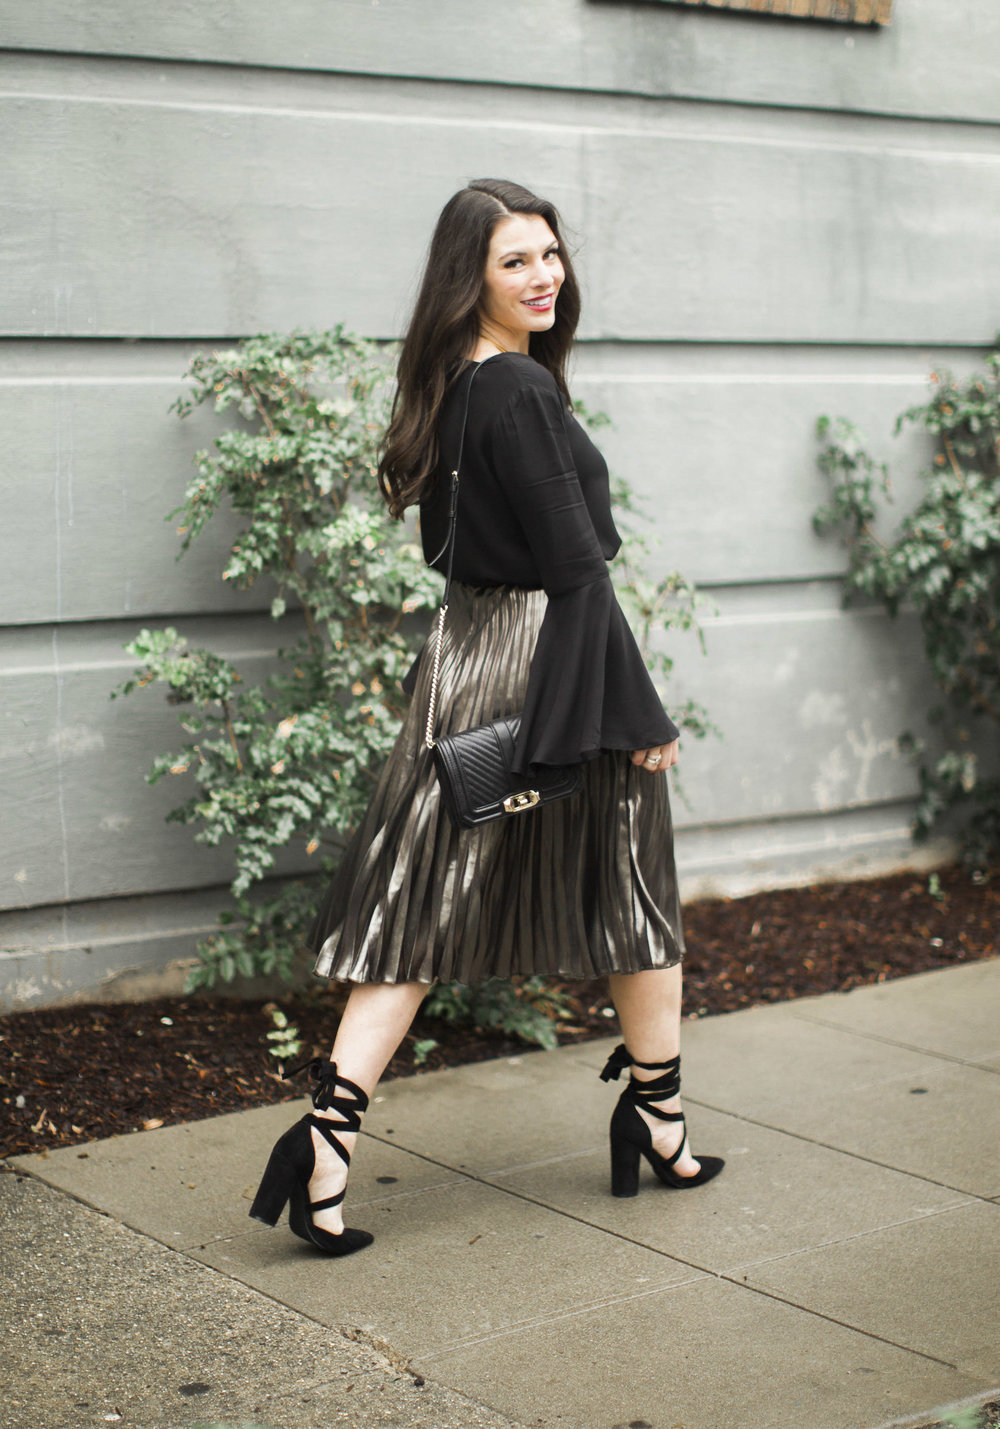 NYE outfit, metallic pleated midi skirt, bell sleeve blouse, Steve Madden Bryony Pumps, & Rebecca Minkoff Love crossbody bag.